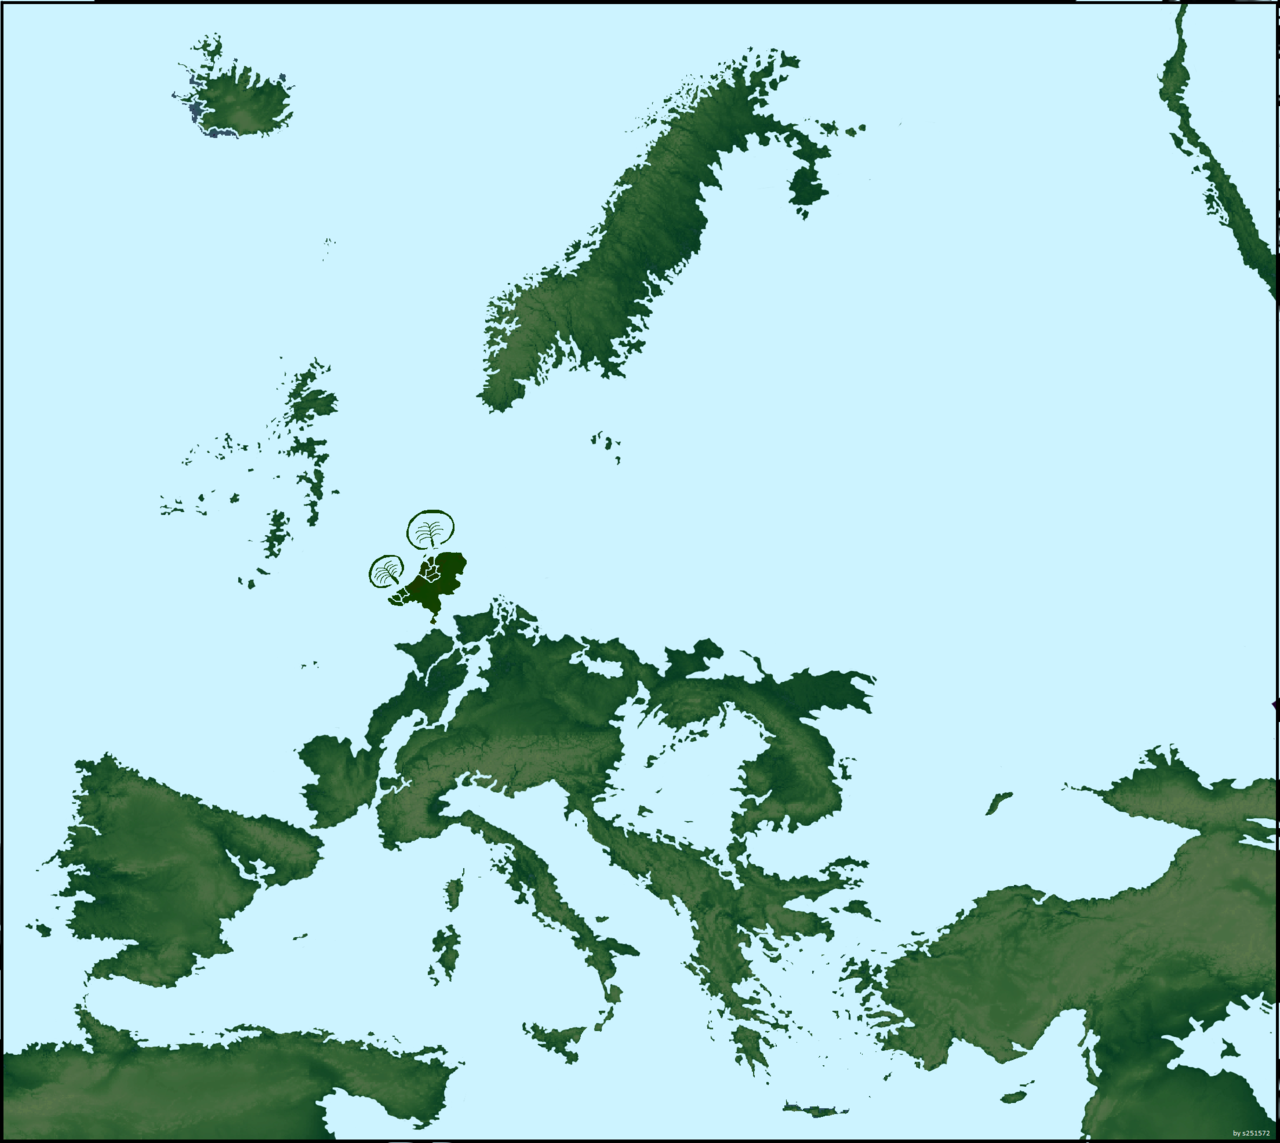 If sea levels rose a couple hundred meters in Europe